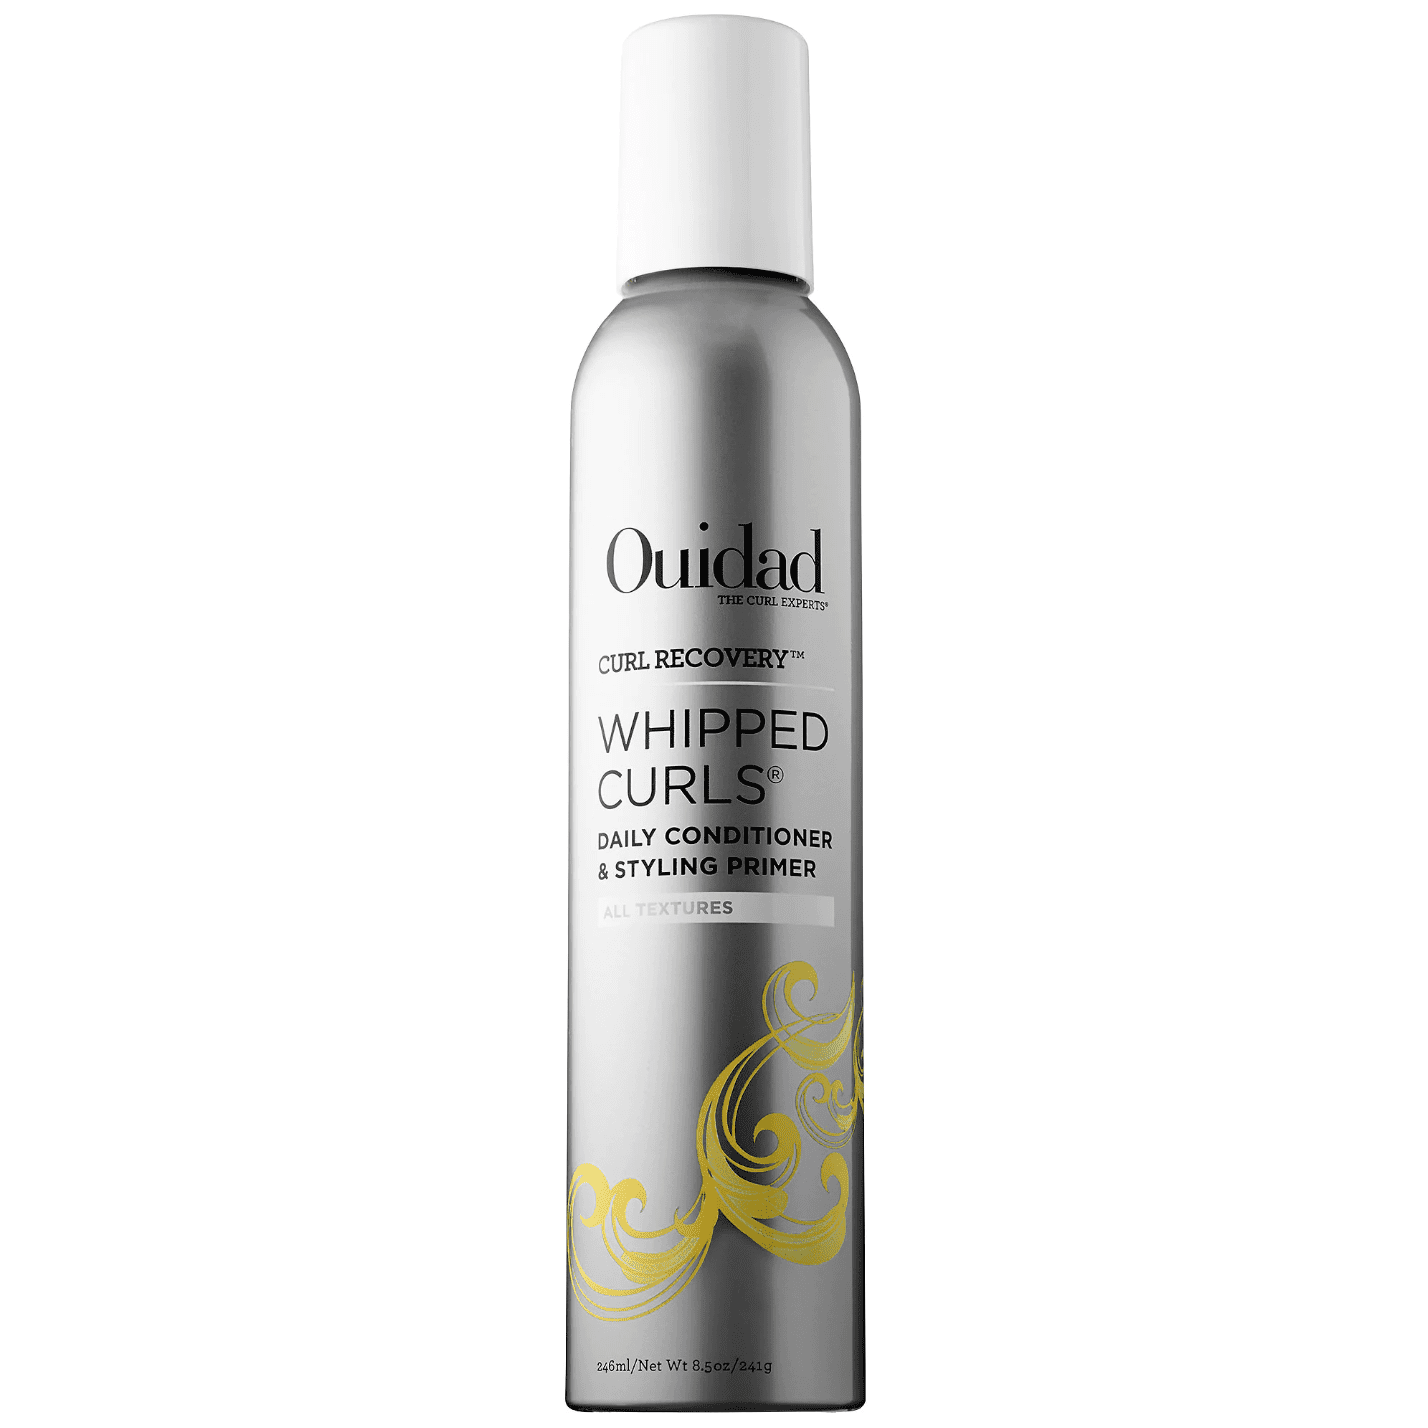 Whipped Curls Daily Conditioner and Styling Primer